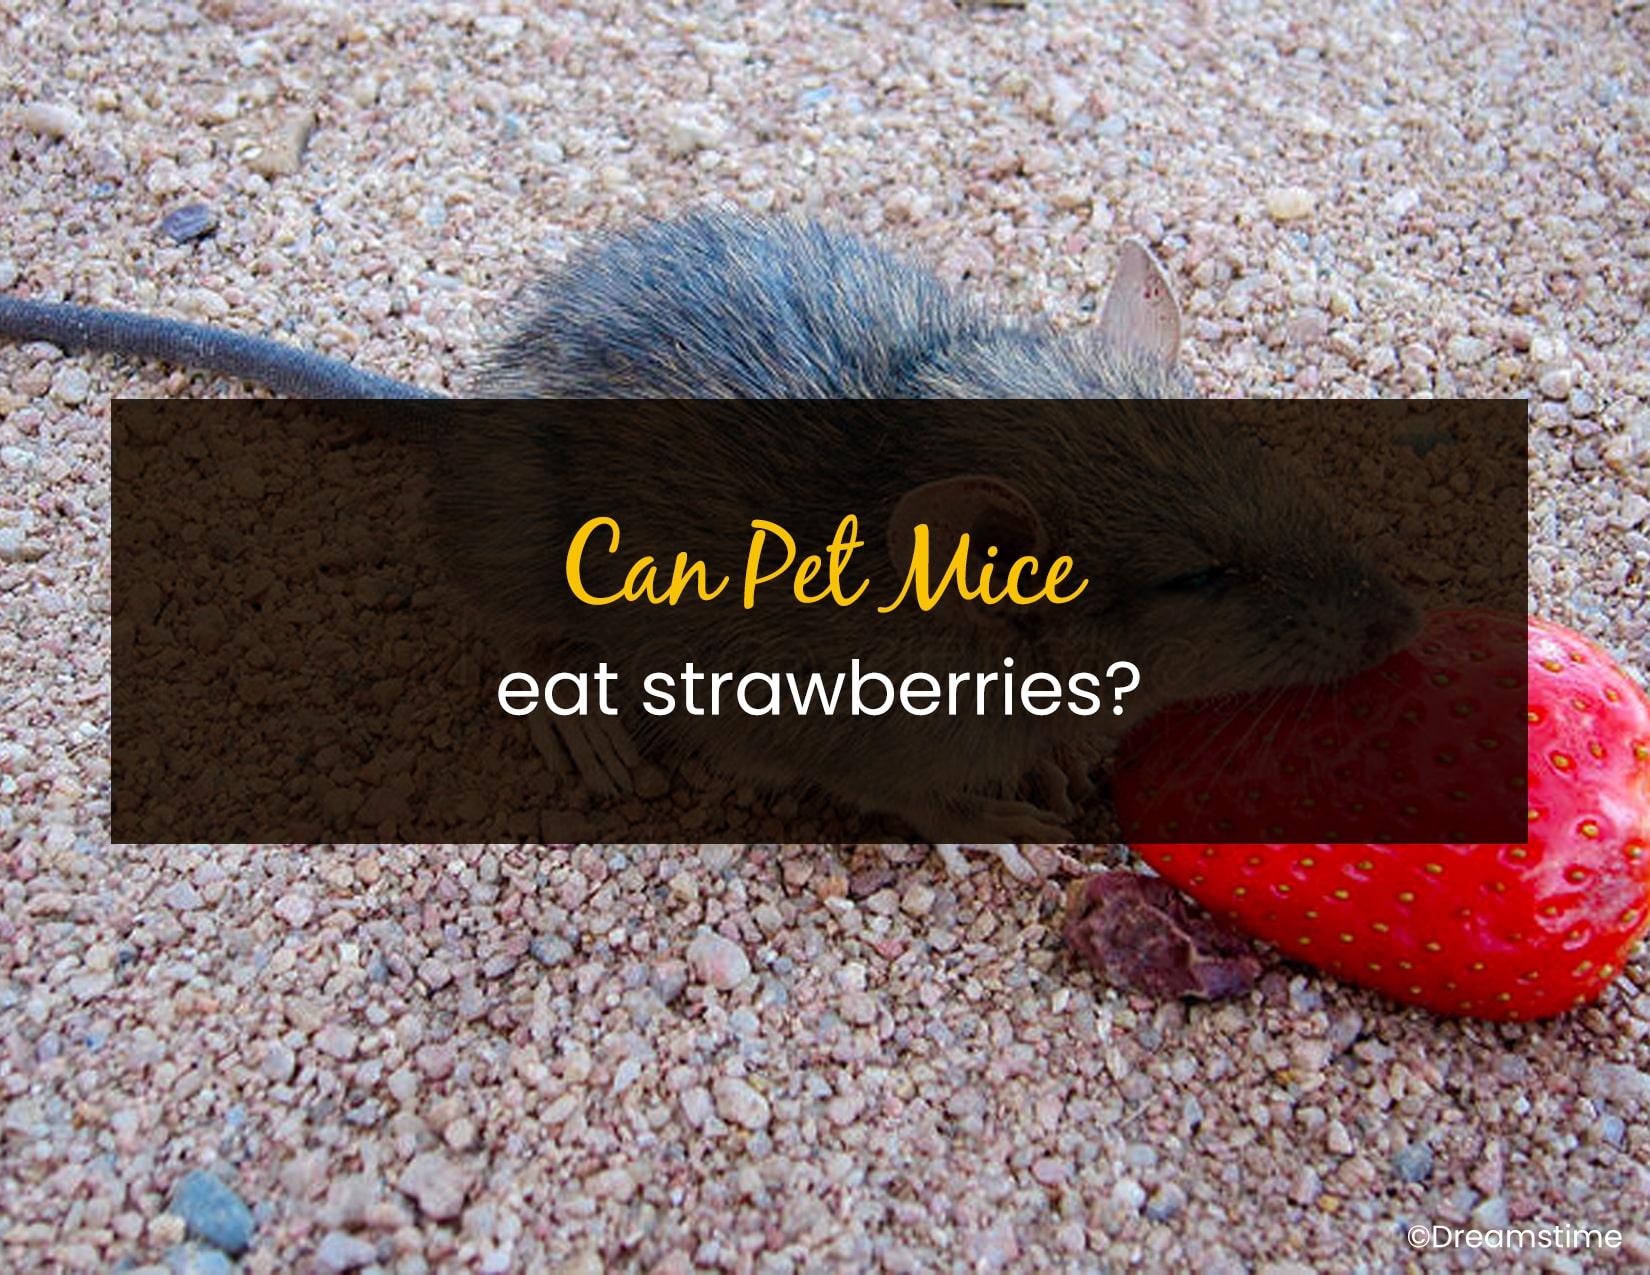 Can Pet Mice Eat Strawberries